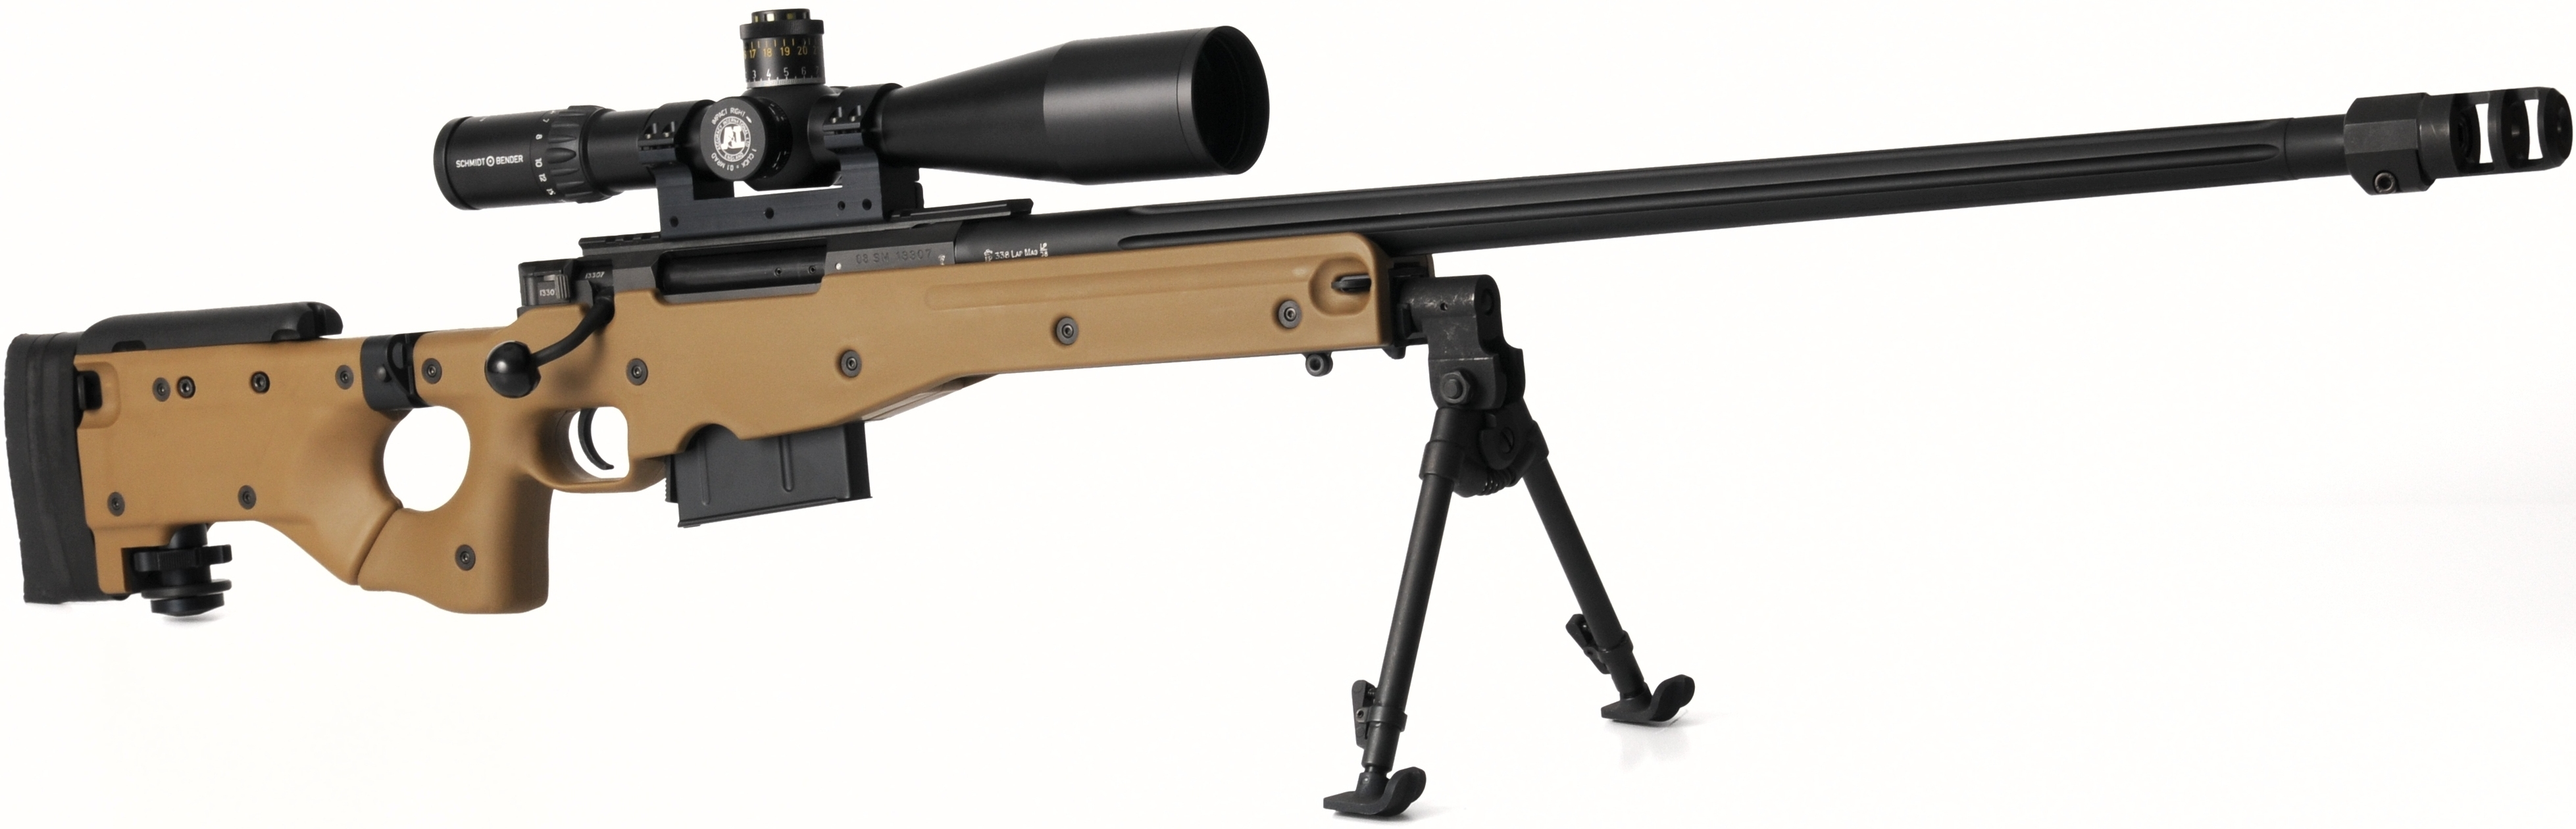 Accuracy International Aw 338 Sniper Rifle High Quality Background on Wallpapers Vista